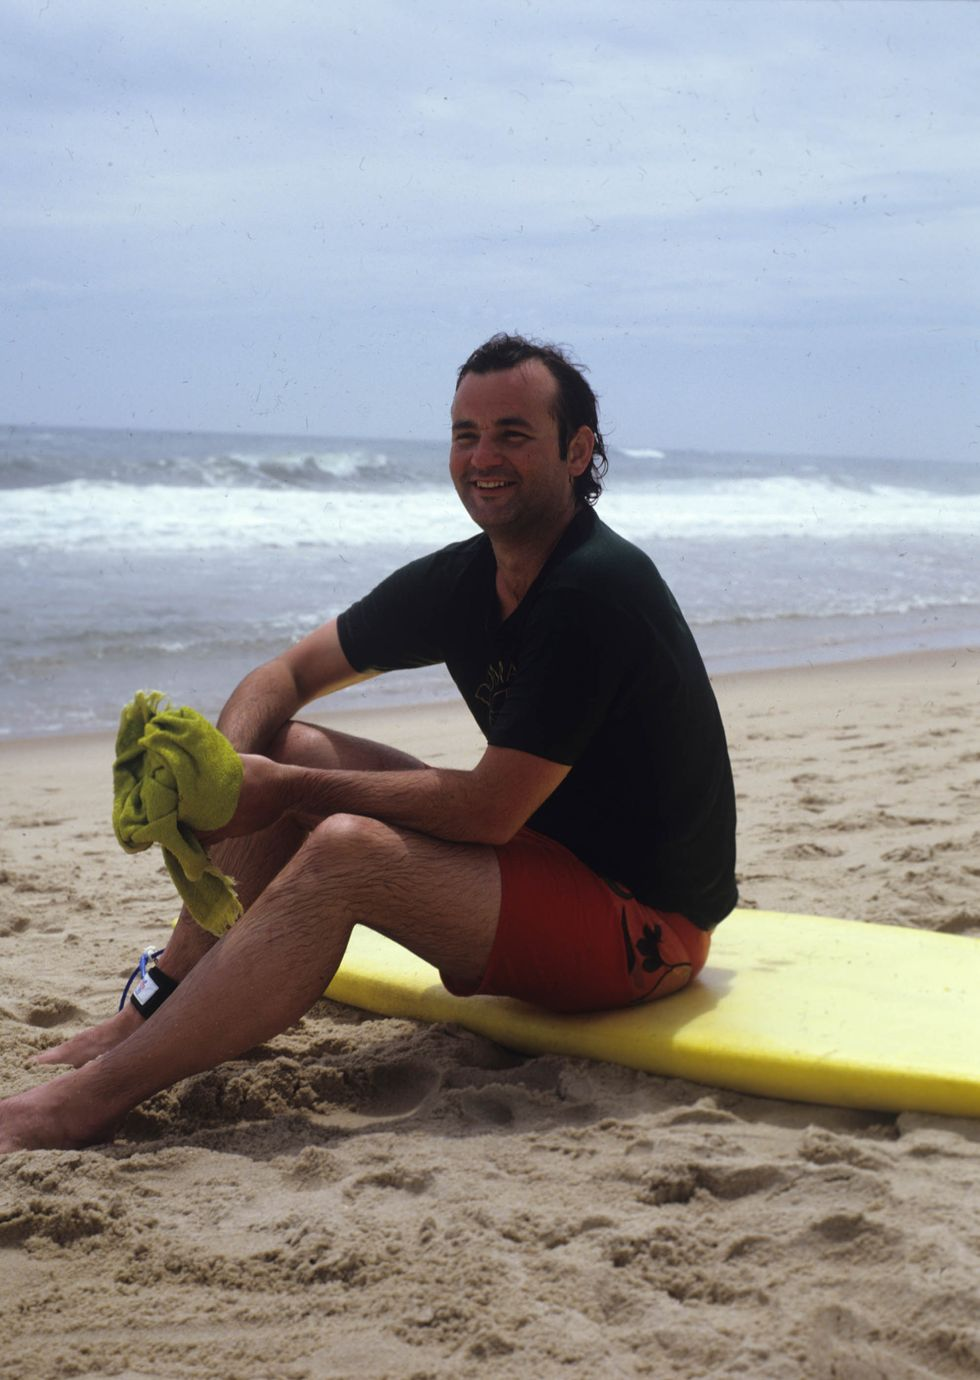 Portrait of Bill Murray, in a t-shirt and swimming trunks, as he sits on a yellow surfboard on the beach during a photoshoot for Rolling Stone magazine, 1981.